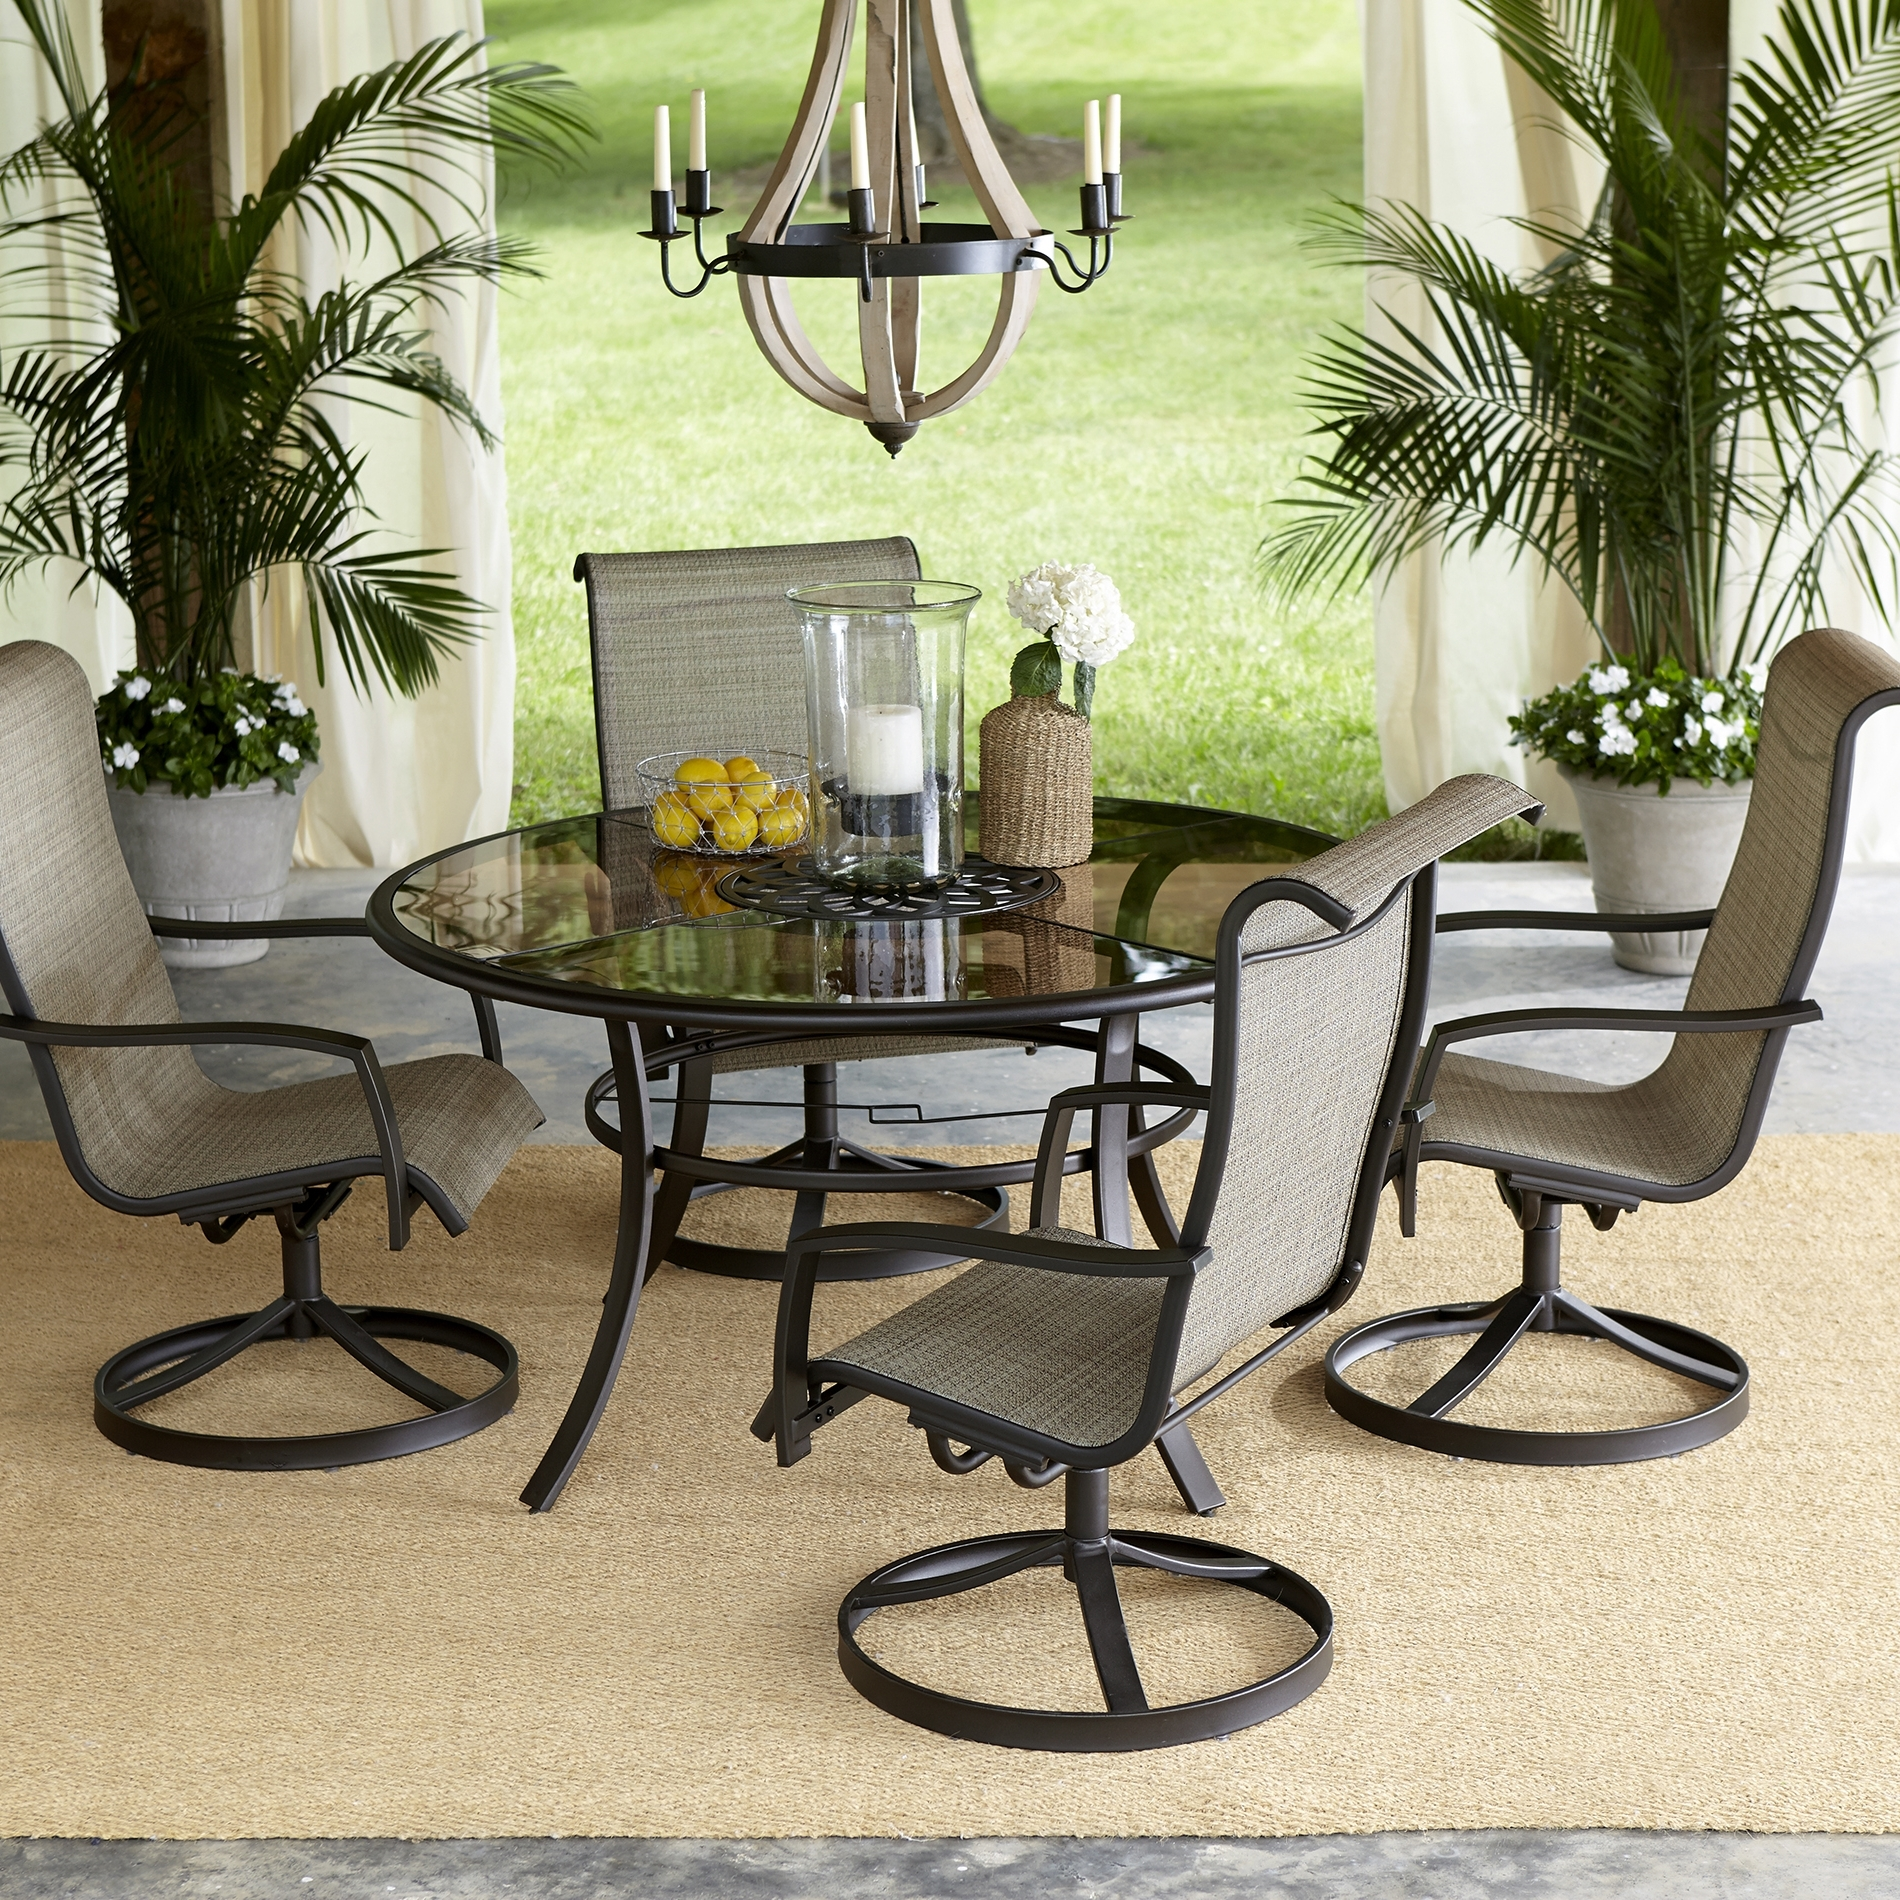 Patio Conversation Dining Sets For Preferred Patio Dining Sets Round Table Furniture Alluring Beautiful Tables (View 15 of 15)